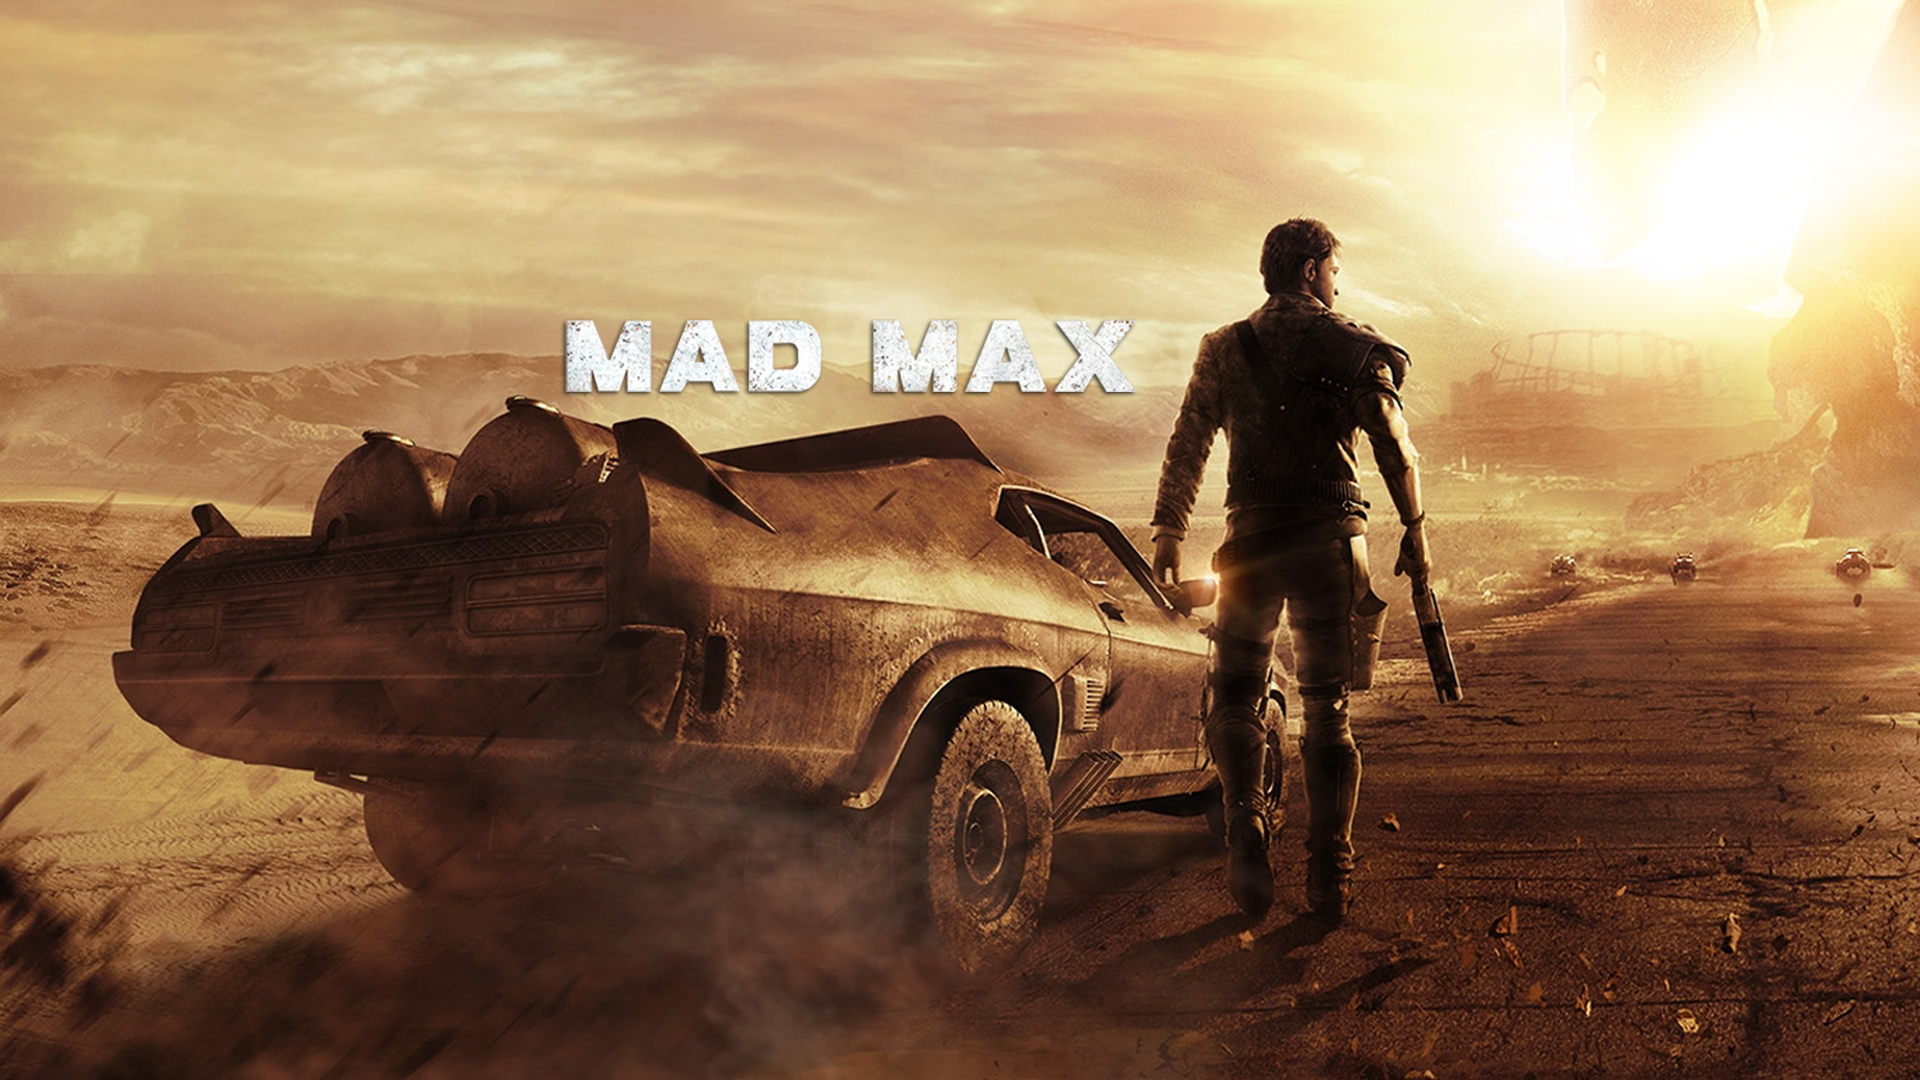 https://www.gamespot.com/reviews/mad-max-review/1900-6416232/